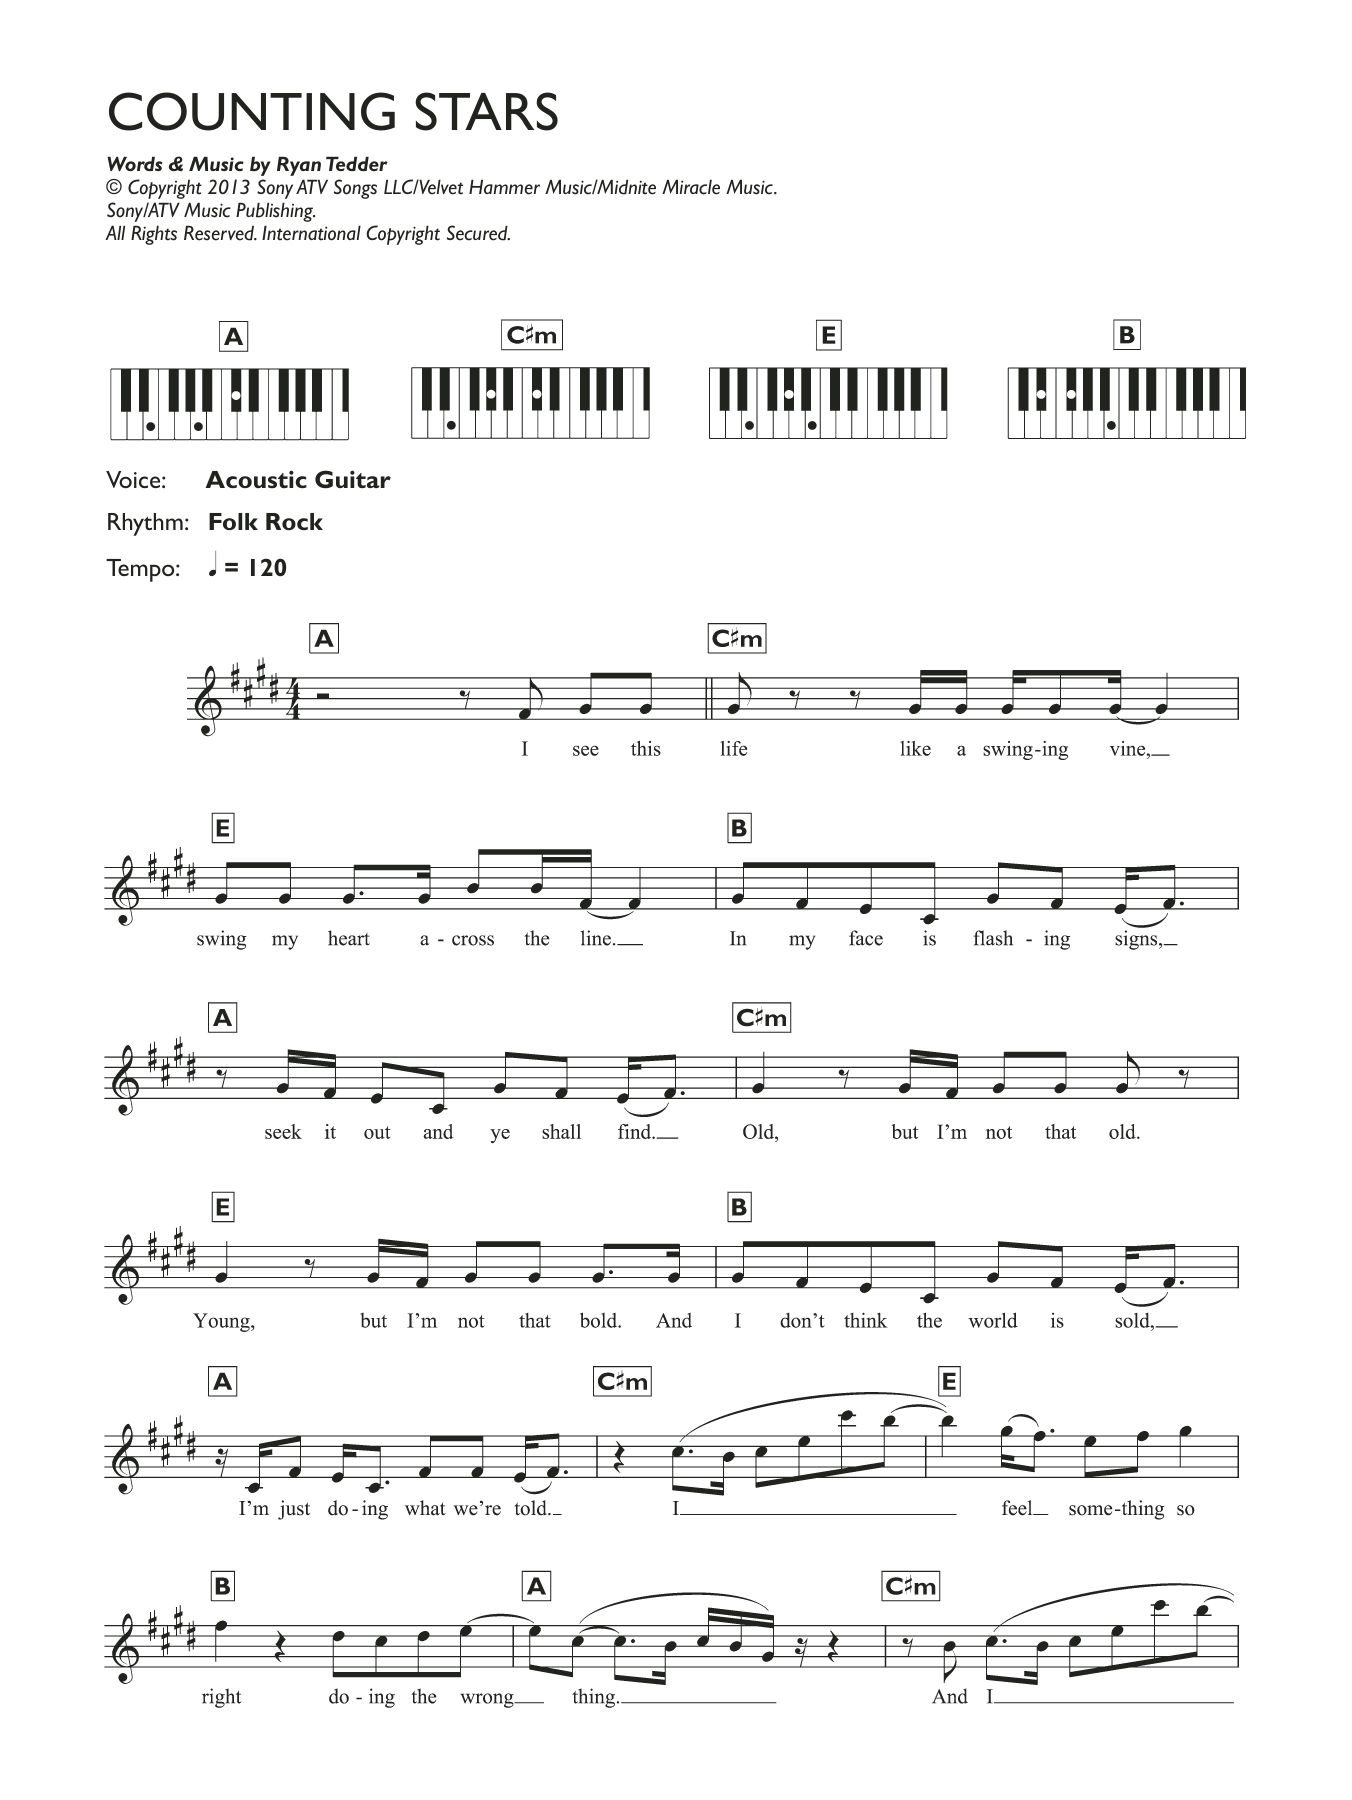 Counting stars sheet music direct counting stars 099 hexwebz Images